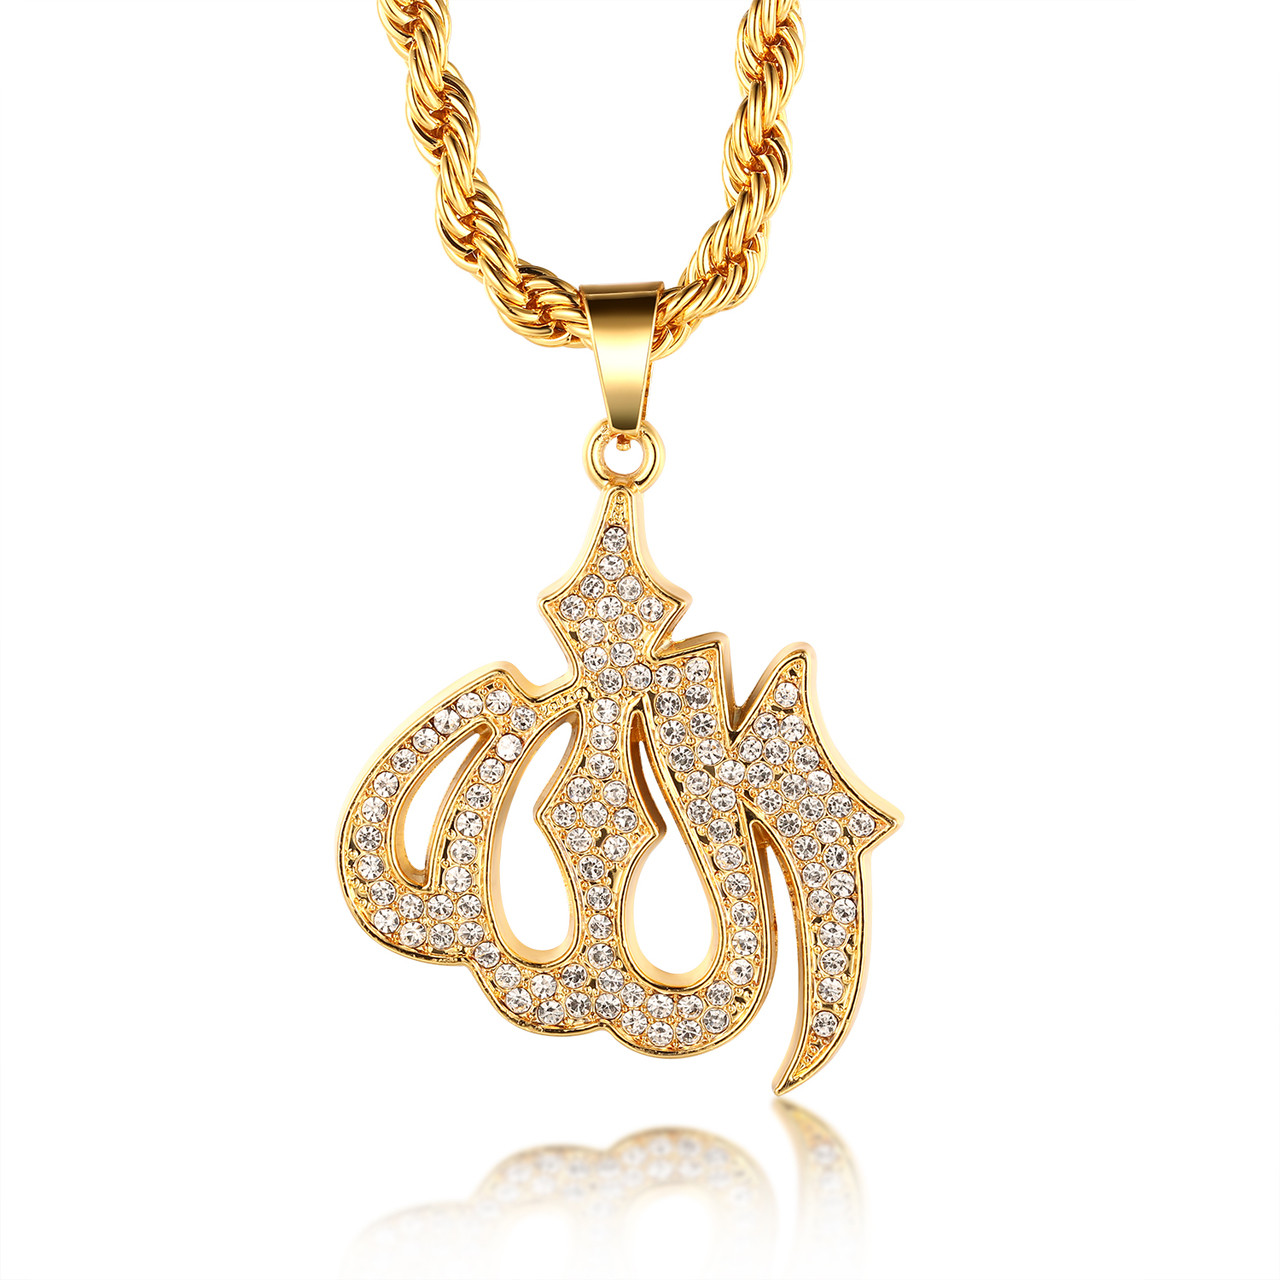 Halukakah gold bless all 18k real gold plated allah islam pendant halukakah gold bless all 18k real gold plated allah islam pendant necklace with free rope chain aloadofball Choice Image